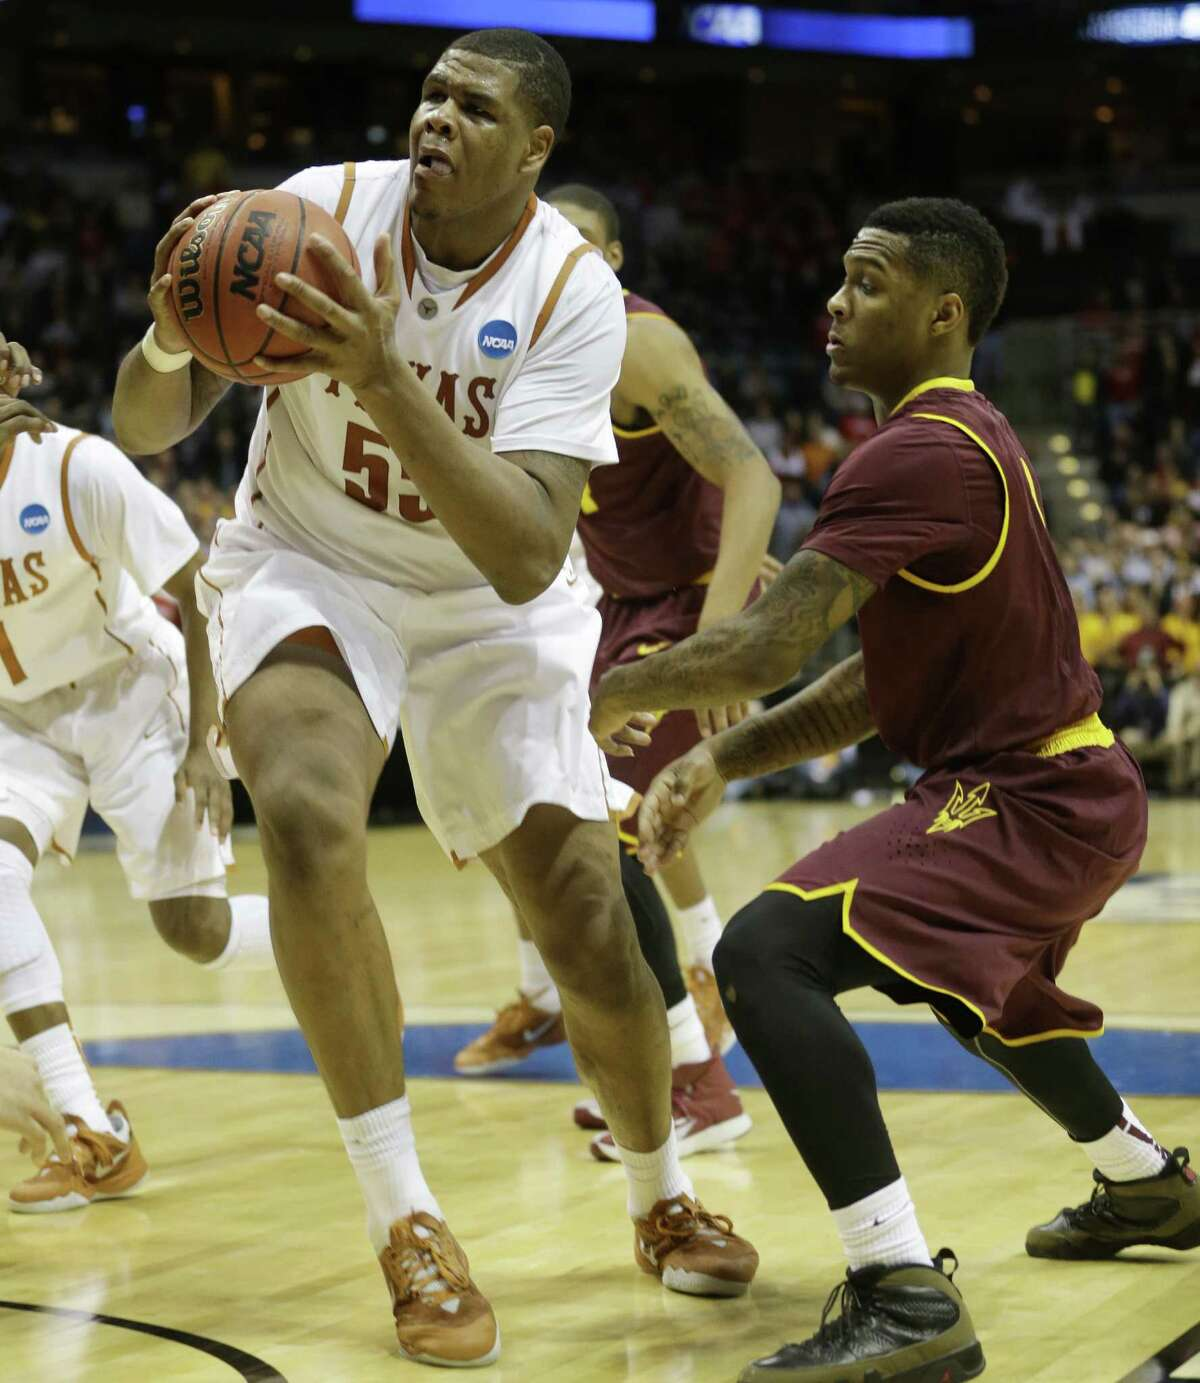 UT sophomore center Cameron Ridley, driving to set up his game-winning basket, had 17 points and 12 rebounds vs. ASU.